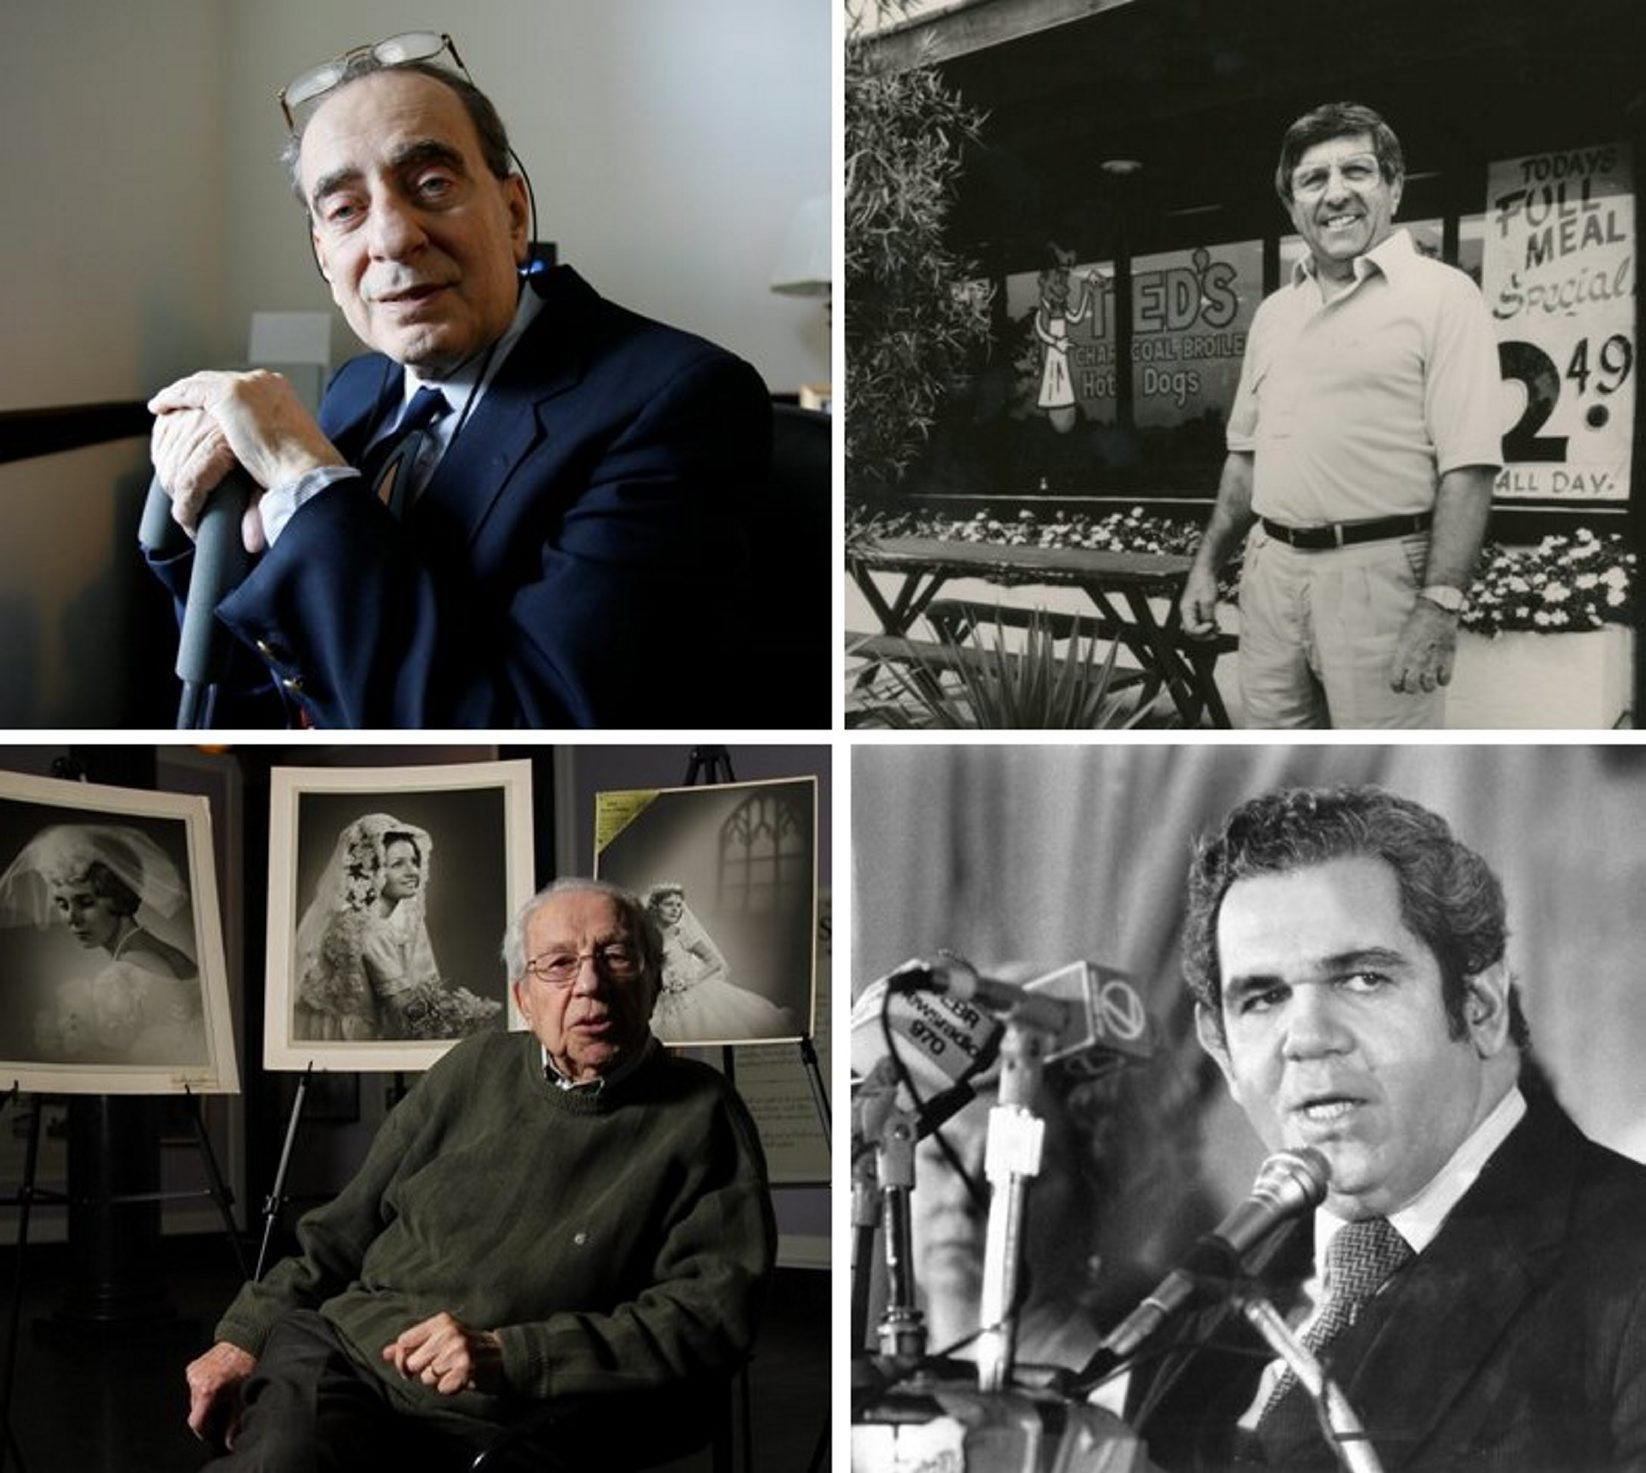 """The end of their stories: Clockwise from top left, James V. Arcadi, a major figure on the political landscape, particularly on the West Side; Spiro """"Ted"""" Liaros, who built Ted's Hot Dogs into the success it is today; Frank Sedita Jr., a judge who served at several judicial levels; and Ettore Porreca, a photographer noted for his bridal portraits."""